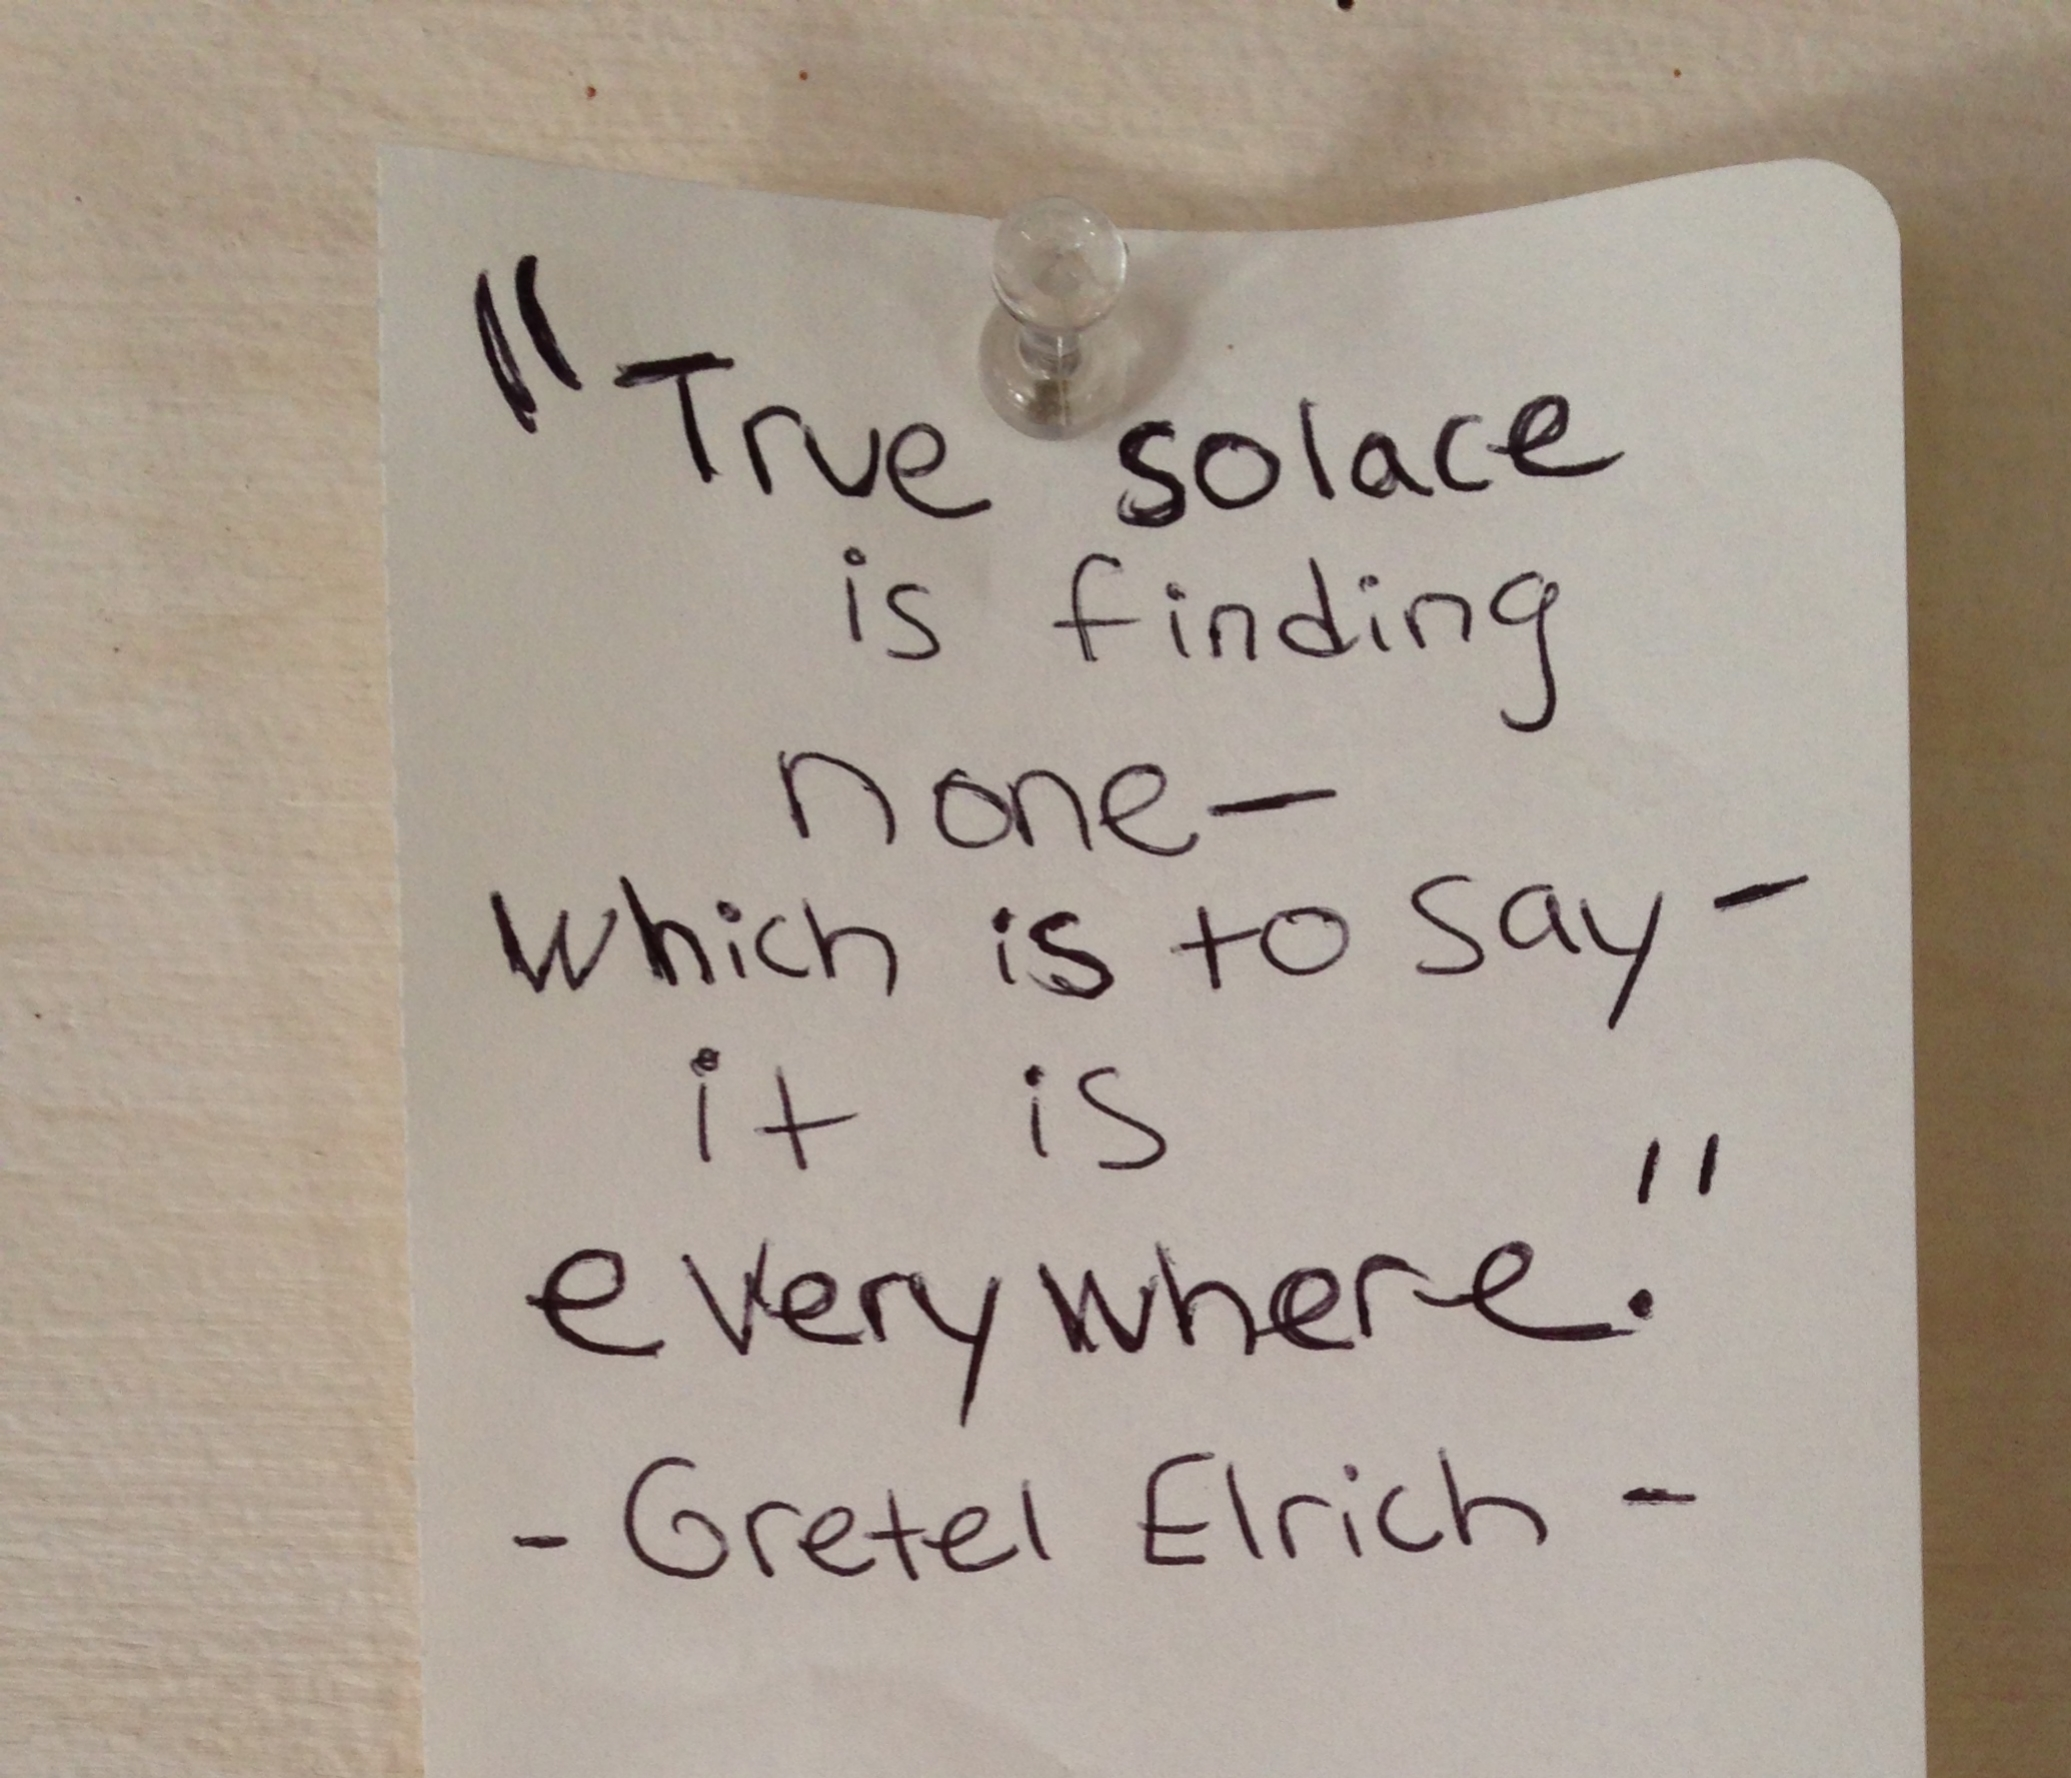 My note I tacked onto the resident board. It's a quote from one of my favorite books,  The Solace of Open Spaces  by Gretel Elhrich. Looks like I spelled her last name wrong on the note though!